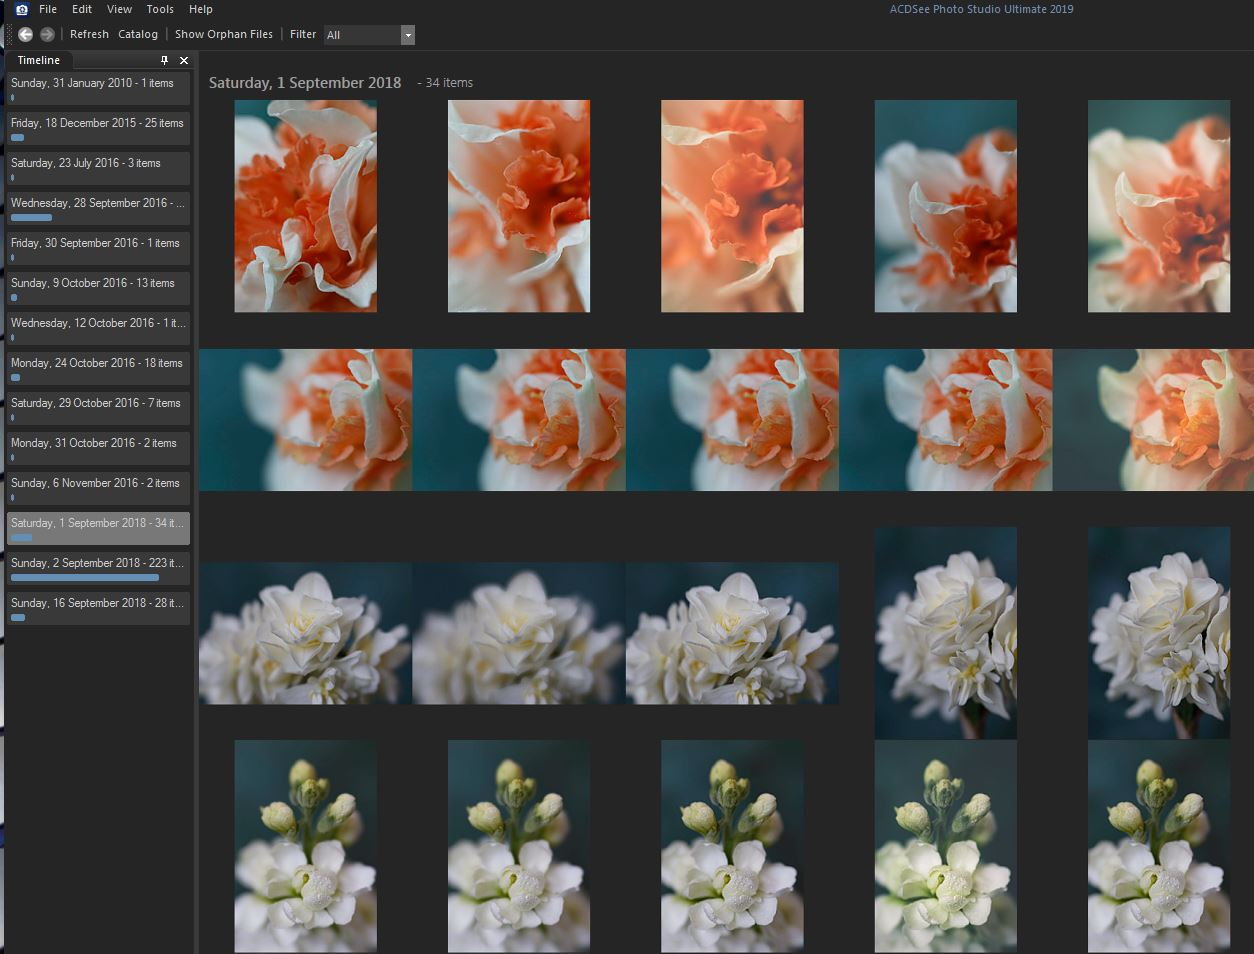 10 - ACDSee Photo Studio Ultimate 2019 Review